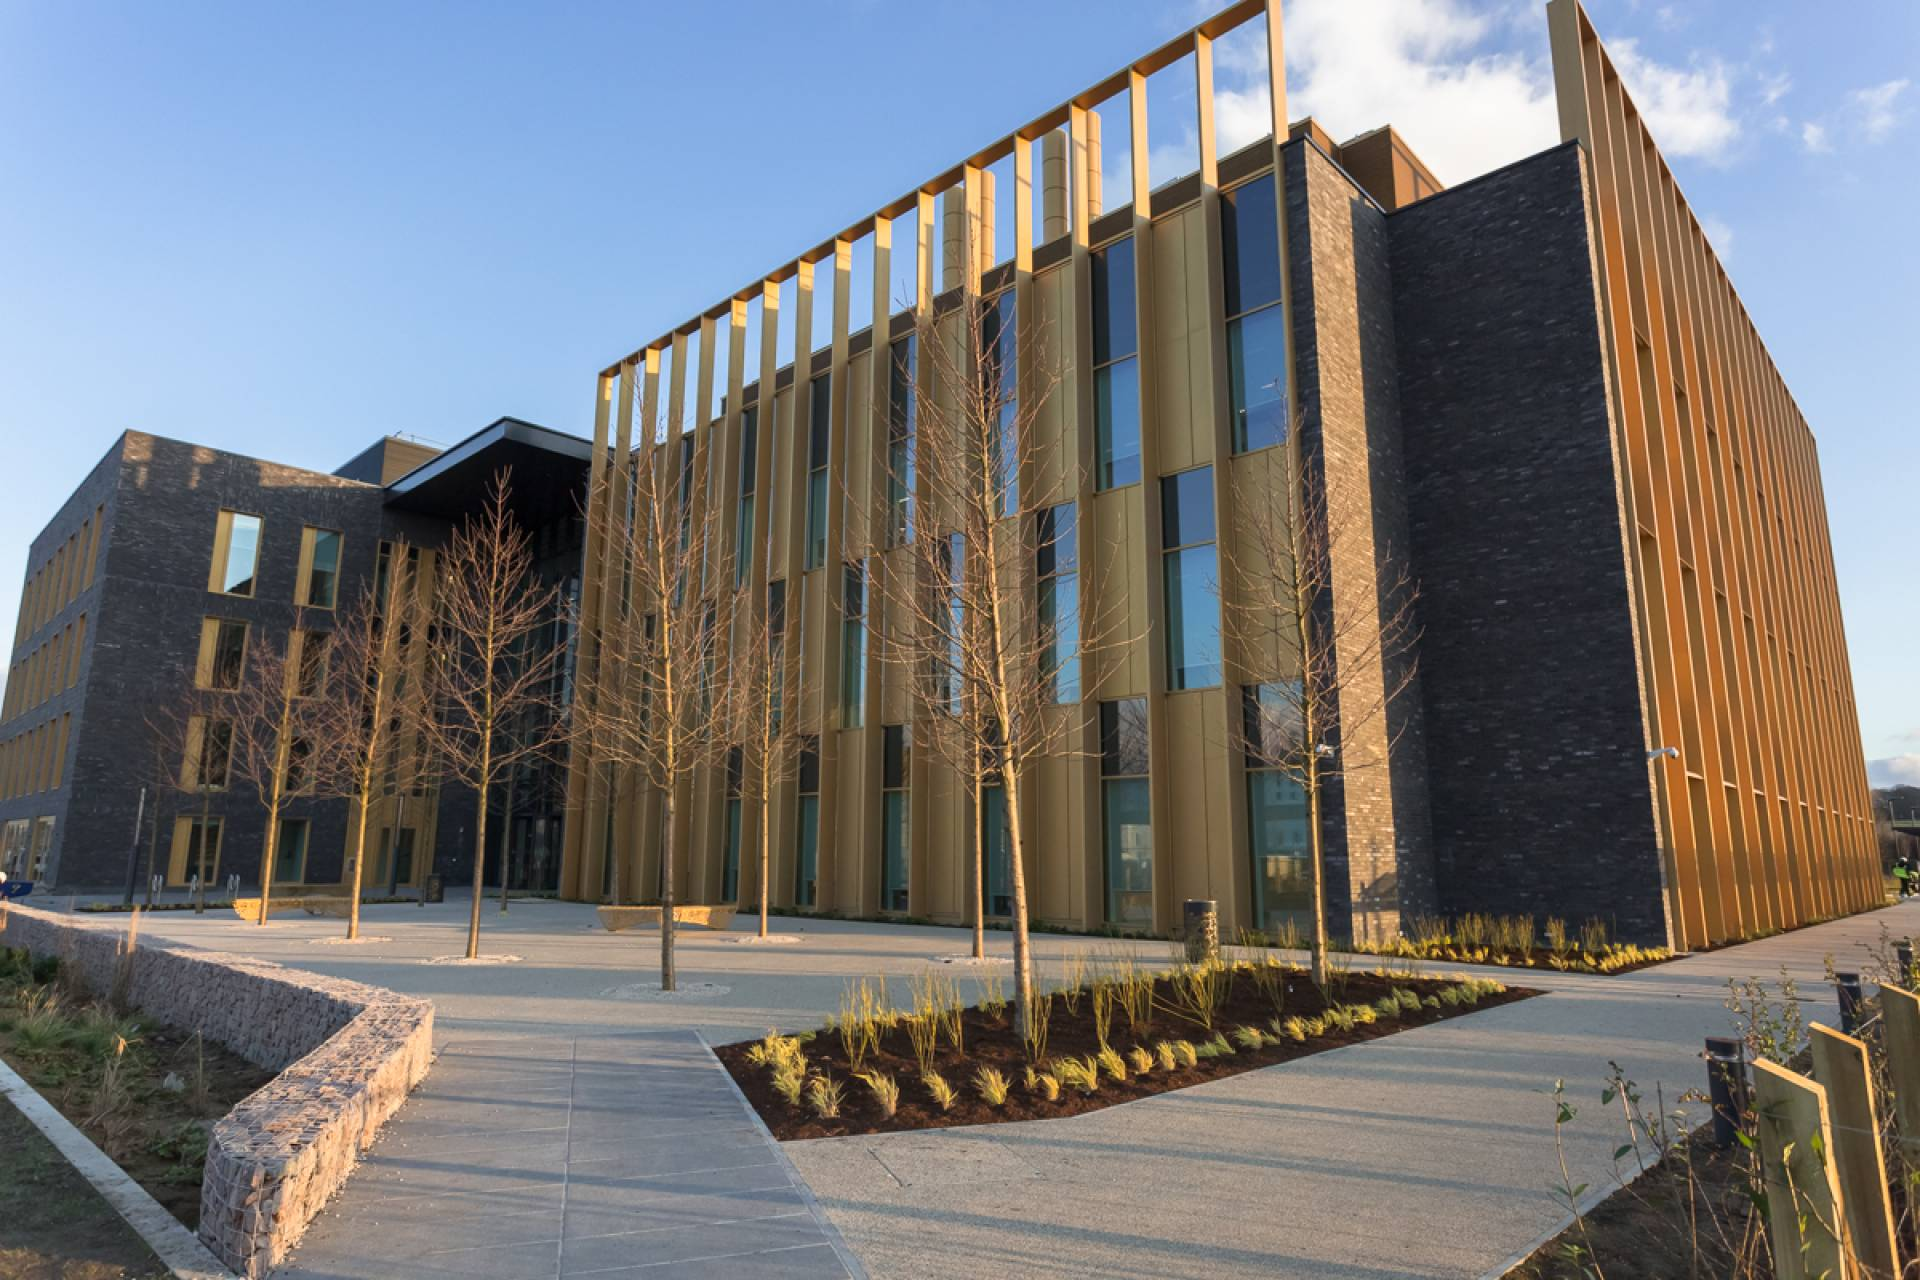 Cambridge biomedical campus facade